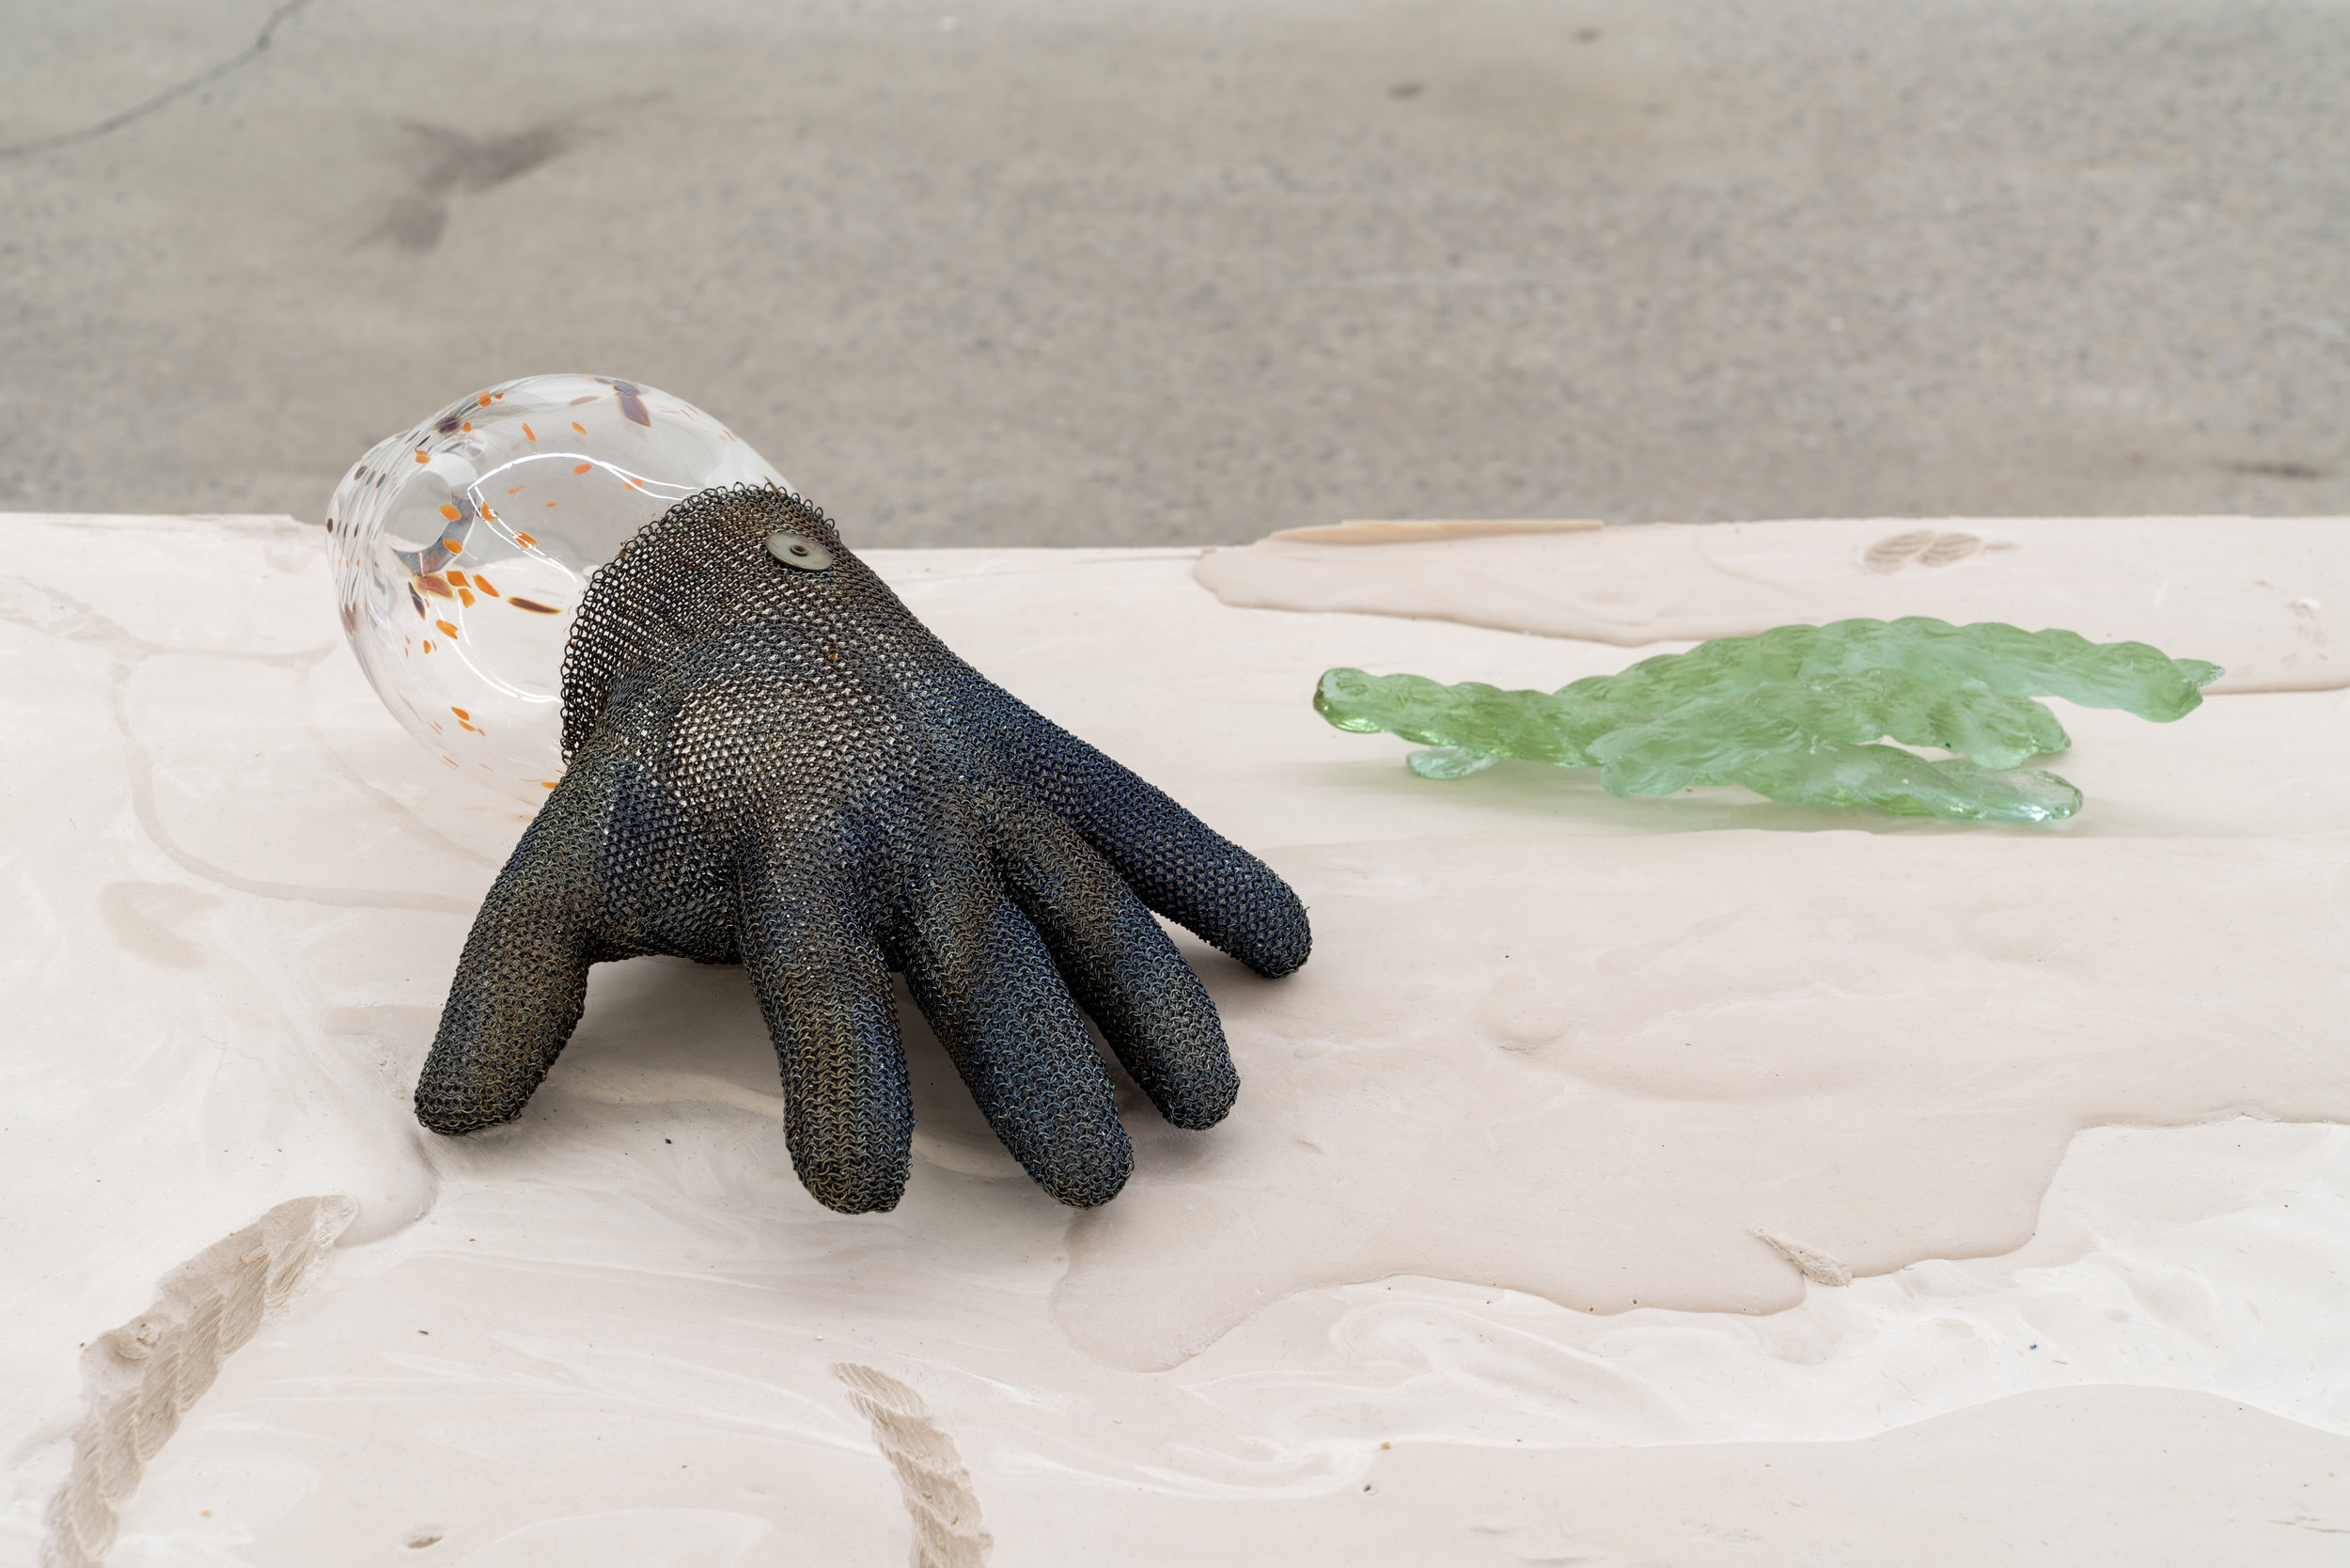 """Lorna Bauer,  The Hand of Mee and the Moonflower no.2 (detail),  2018, glown glass, butcher's glove, molded diachronic crystal, crystal sphere, plaster, wood, 20"""" x 36"""" x 84"""" (51 x 91 x 213 cm)"""